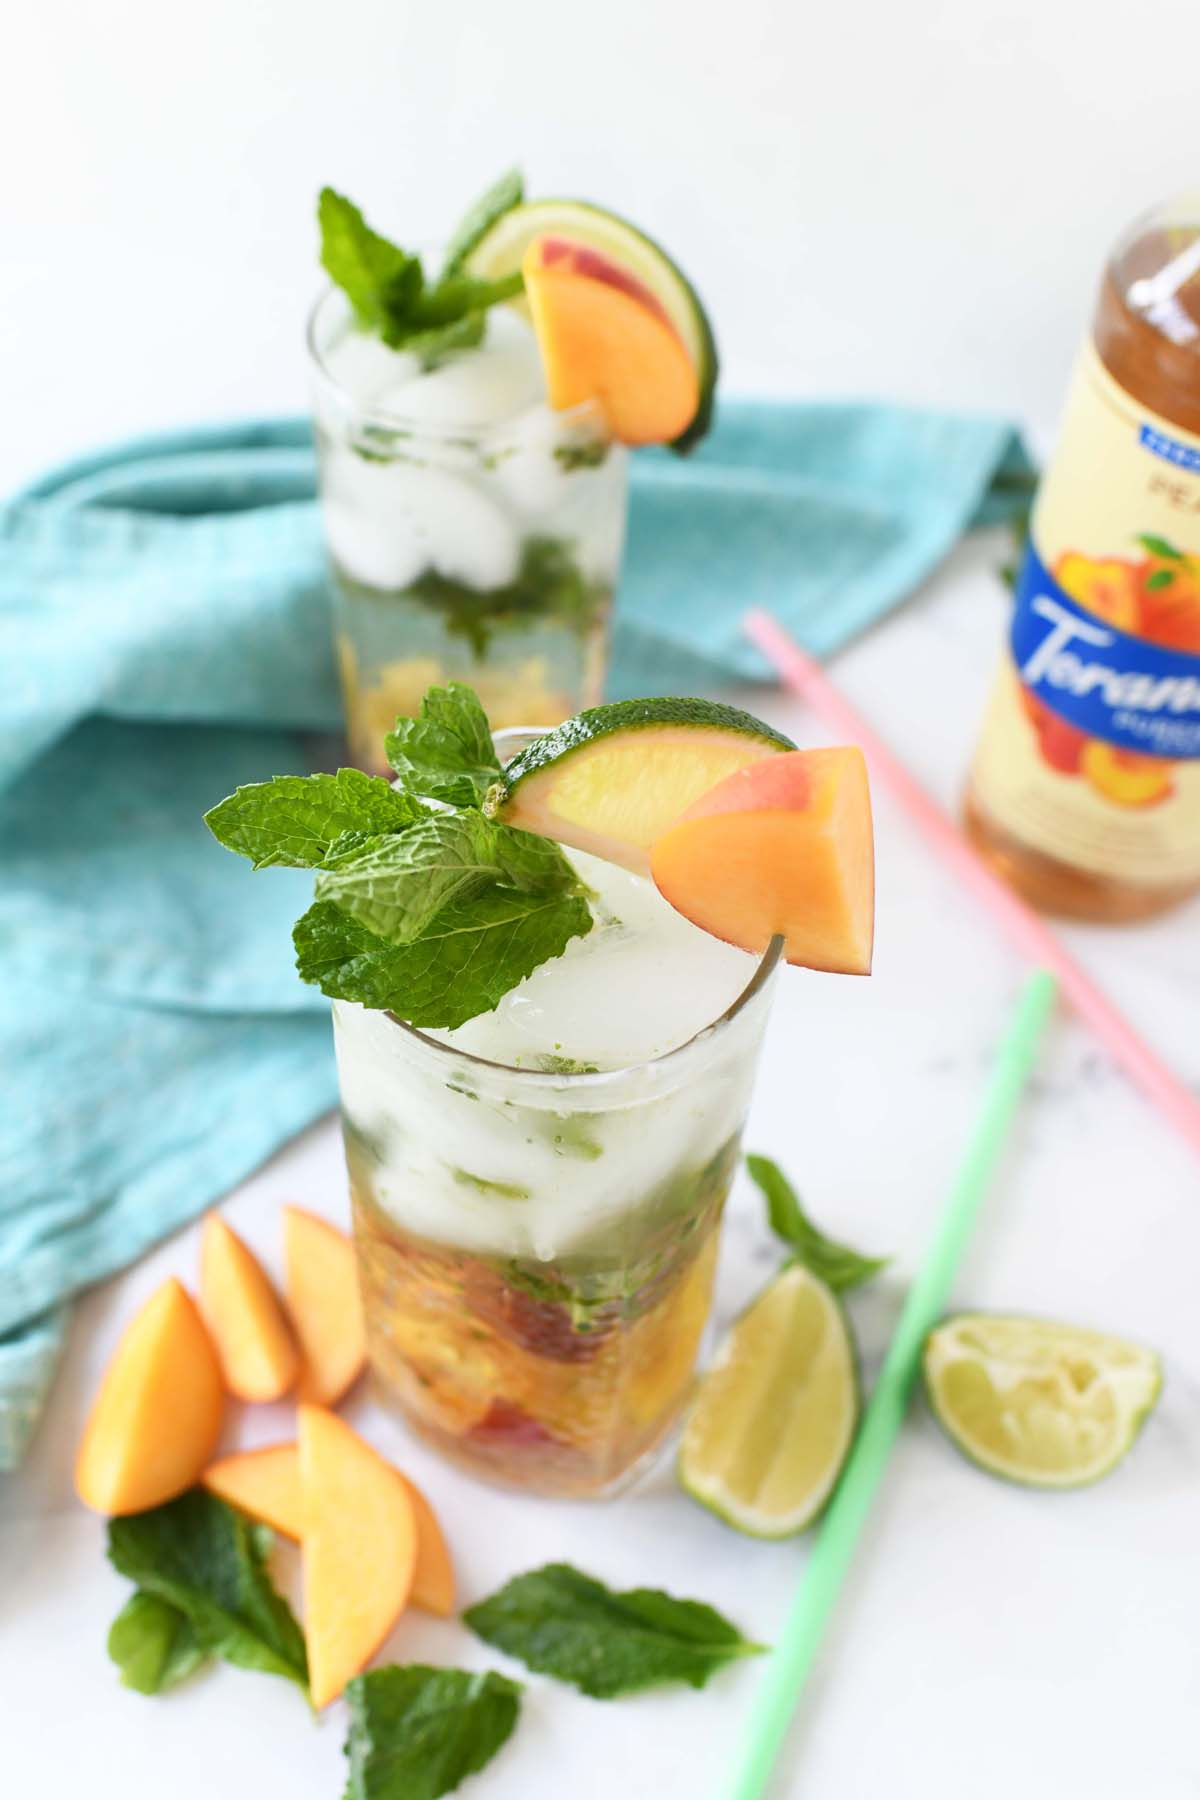 A peach mojito with bright green mint leaves on top.